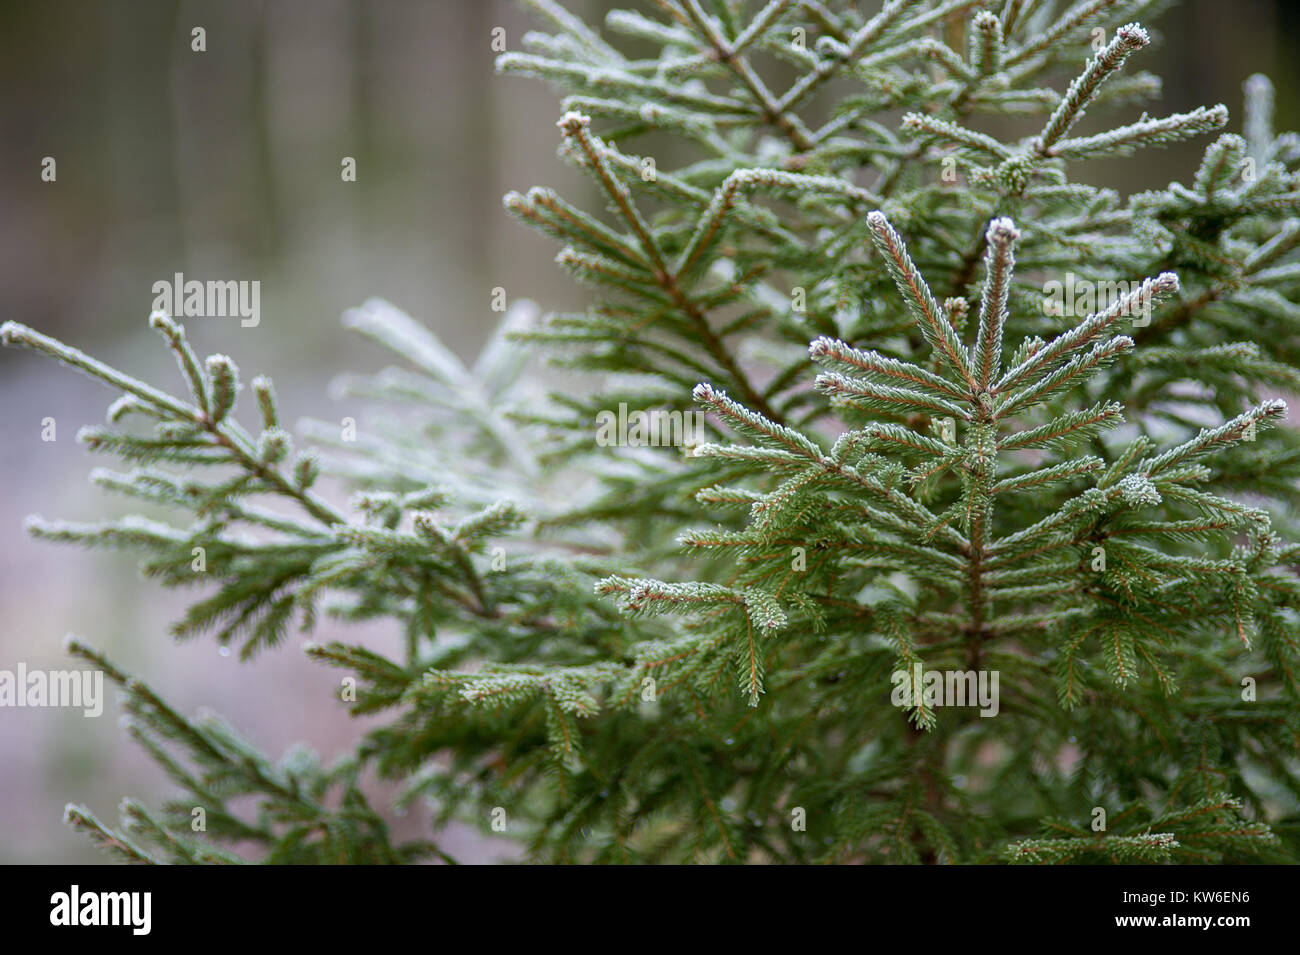 Spruce in a wintry Sweden. - Stock Image